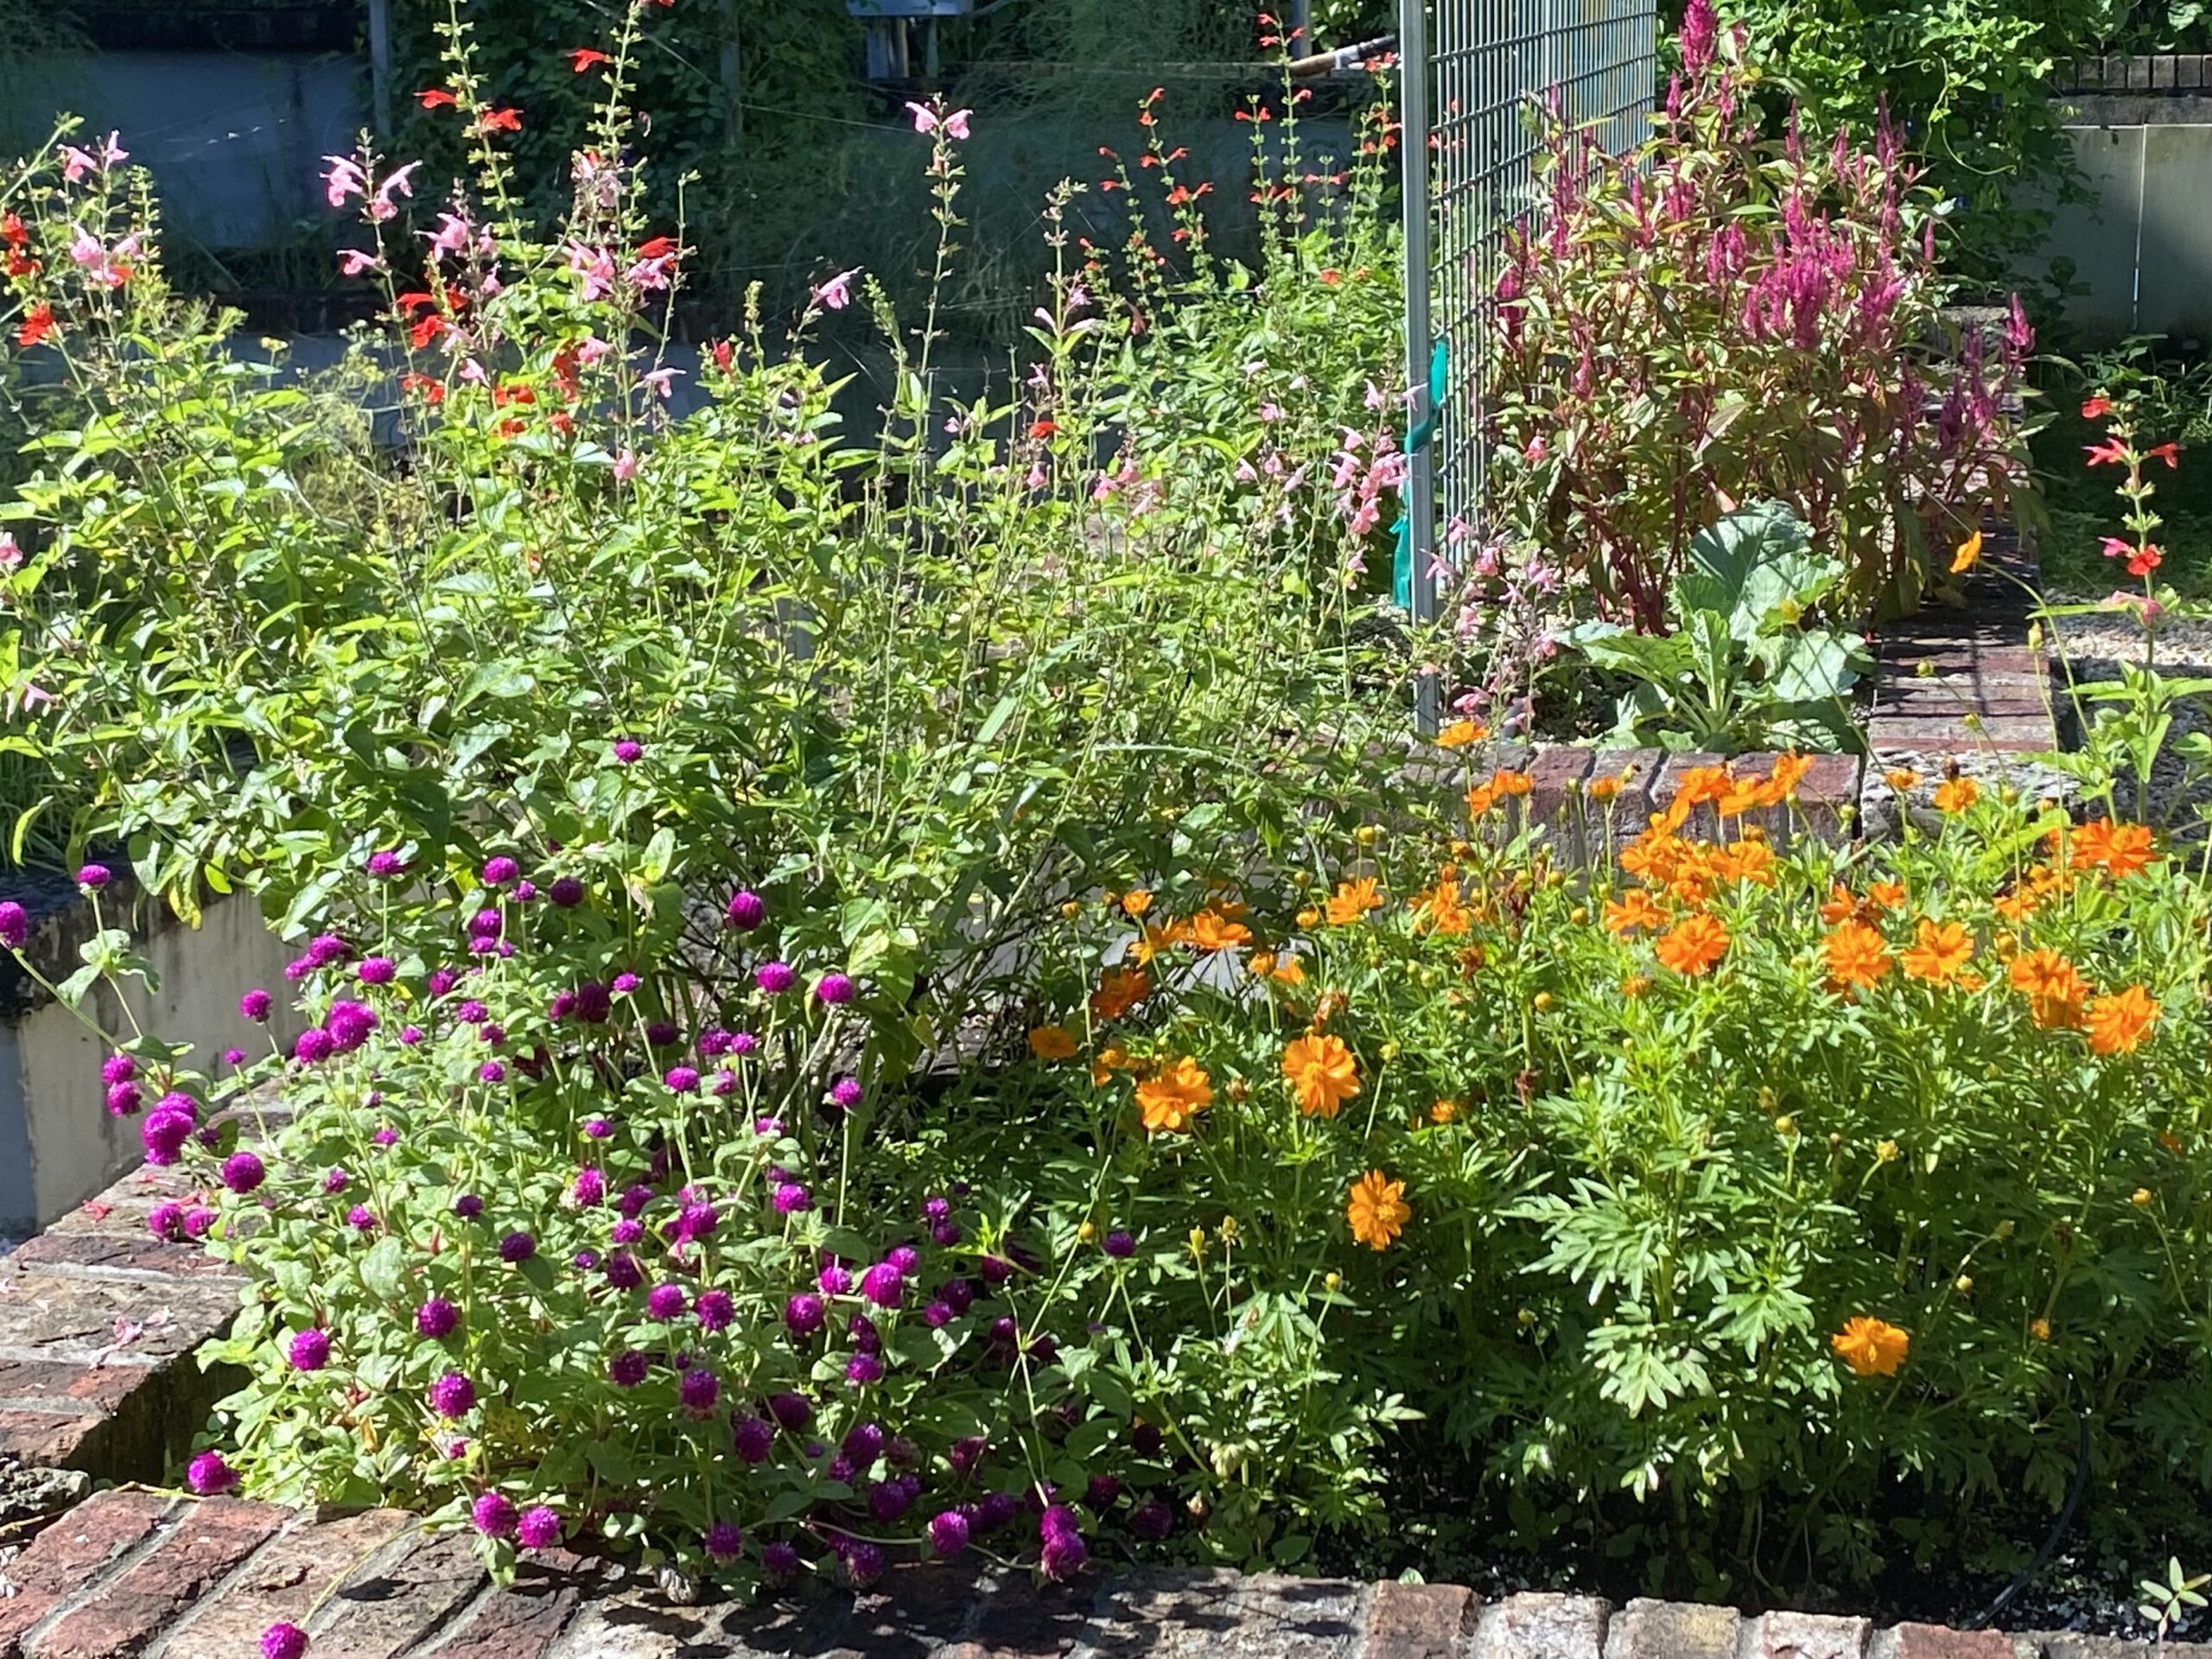 A variety of flowers in garden beds